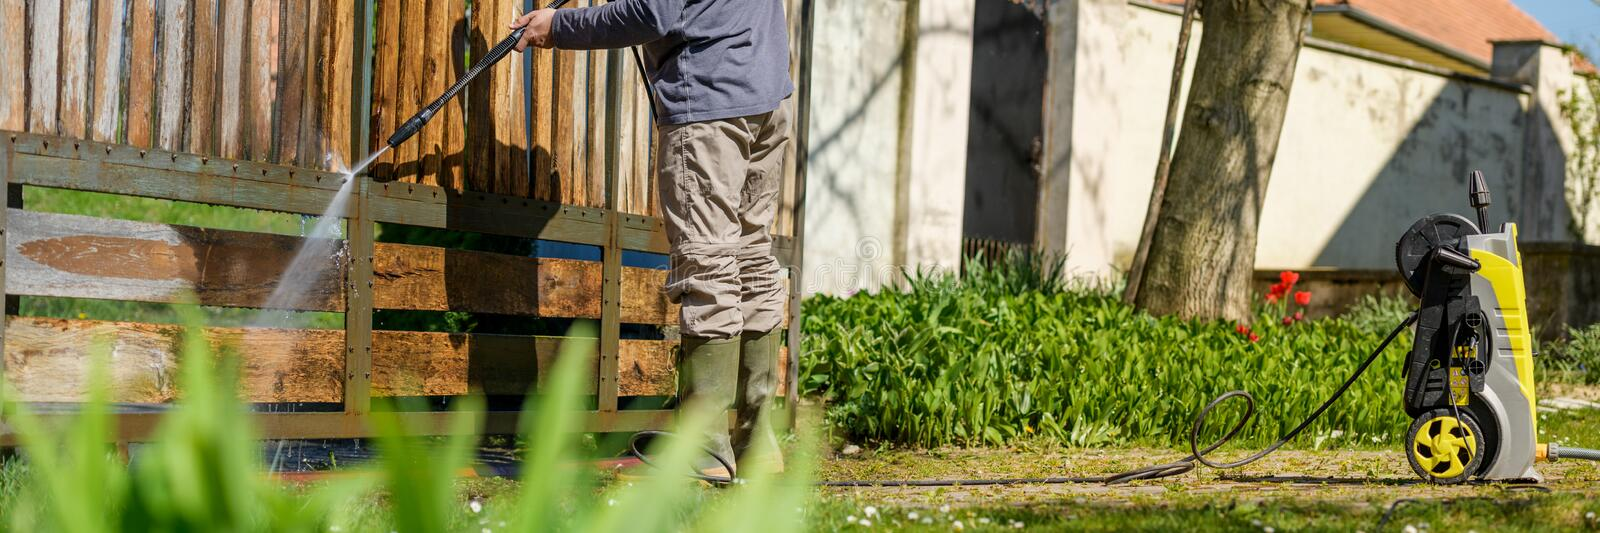 Unrecognizable man cleaning a wooden gate with a power washer. High pressure water cleaner used to DIY repair garden gate. royalty free stock photography